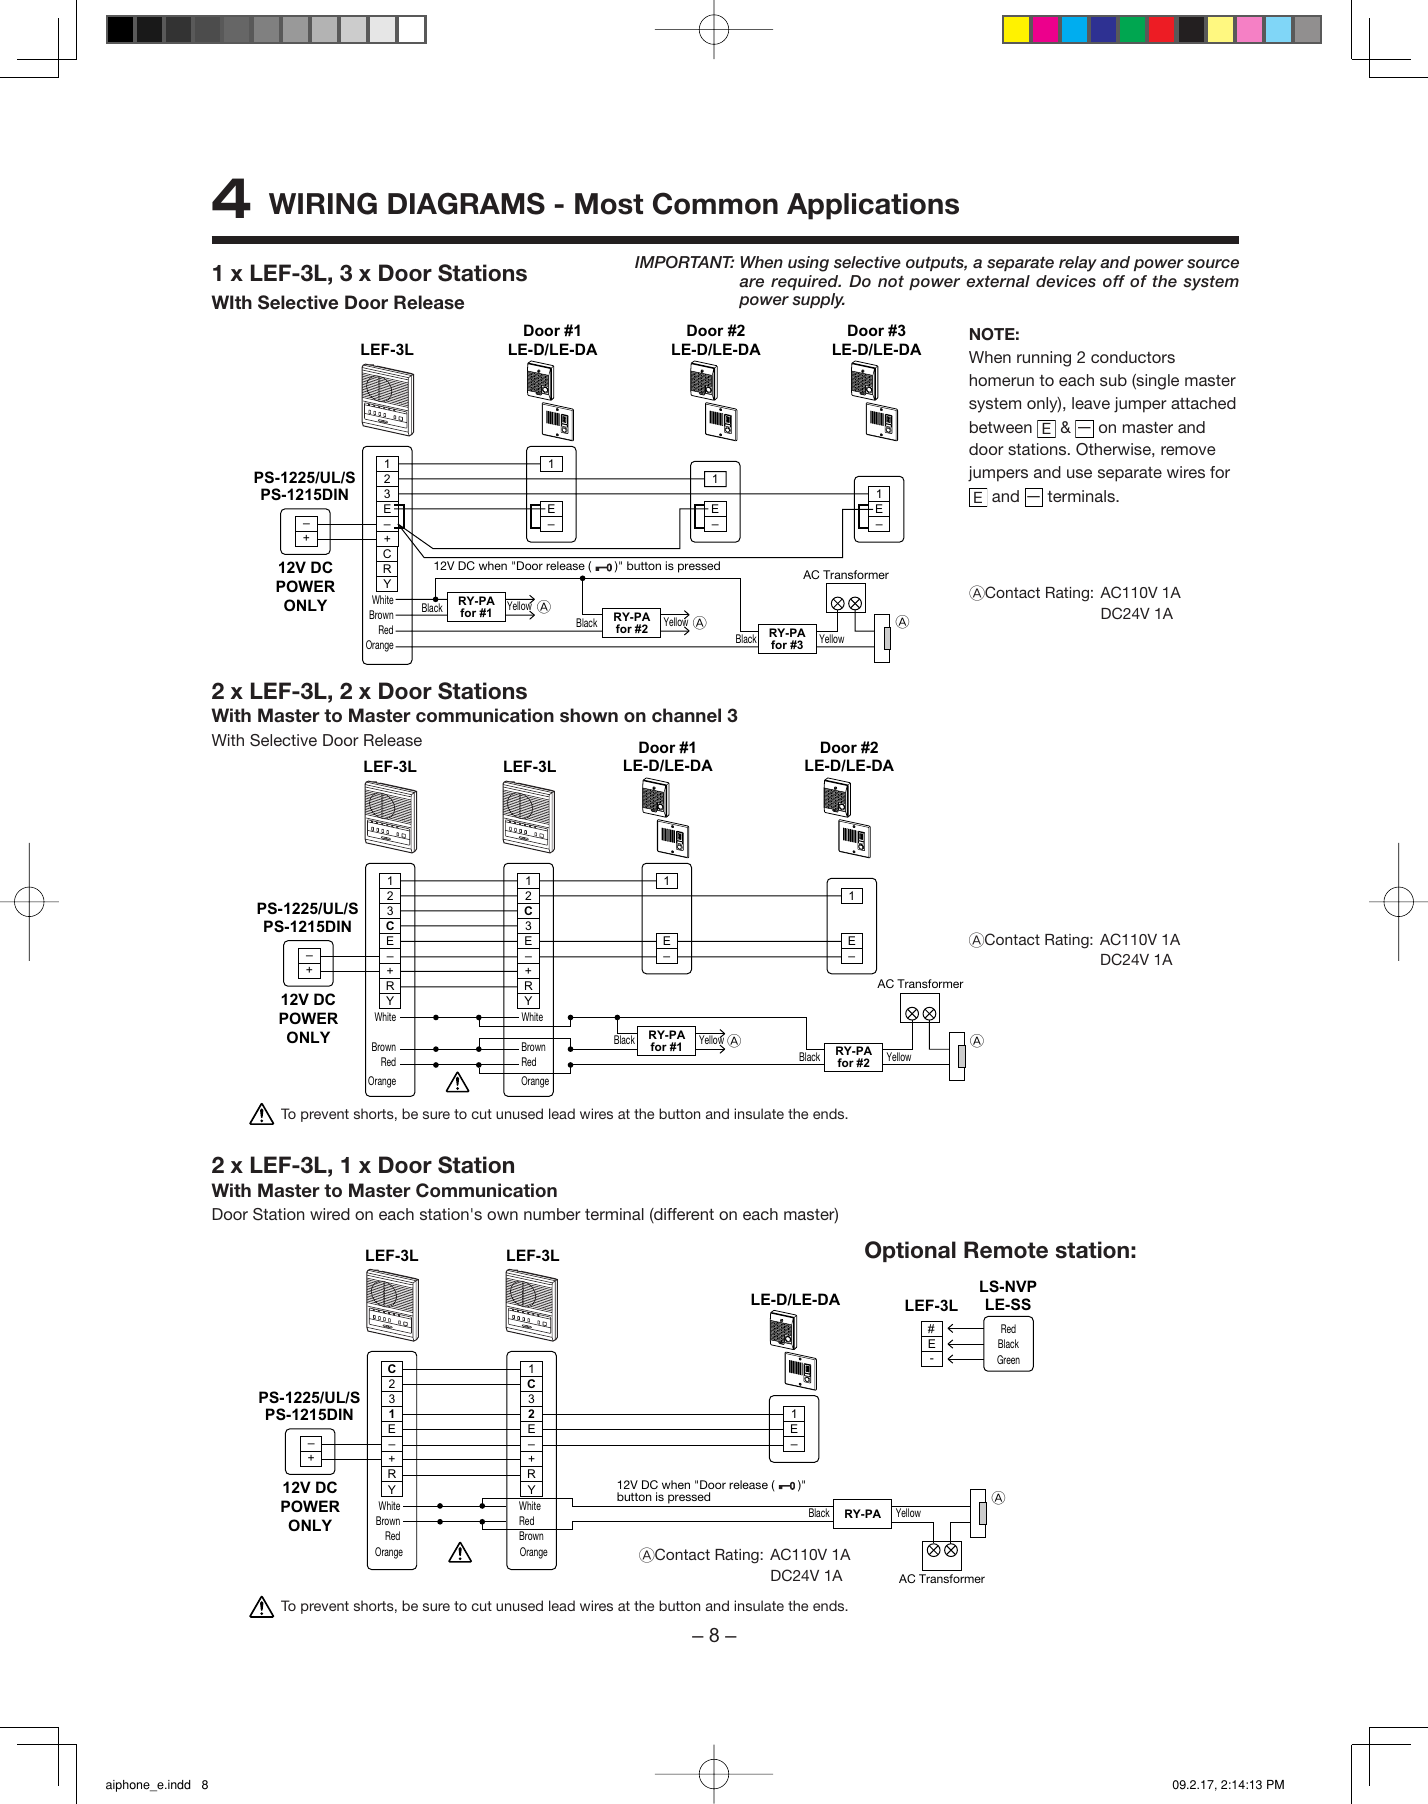 Aiphone Lef 3L Wiring Diagram from usermanual.wiki